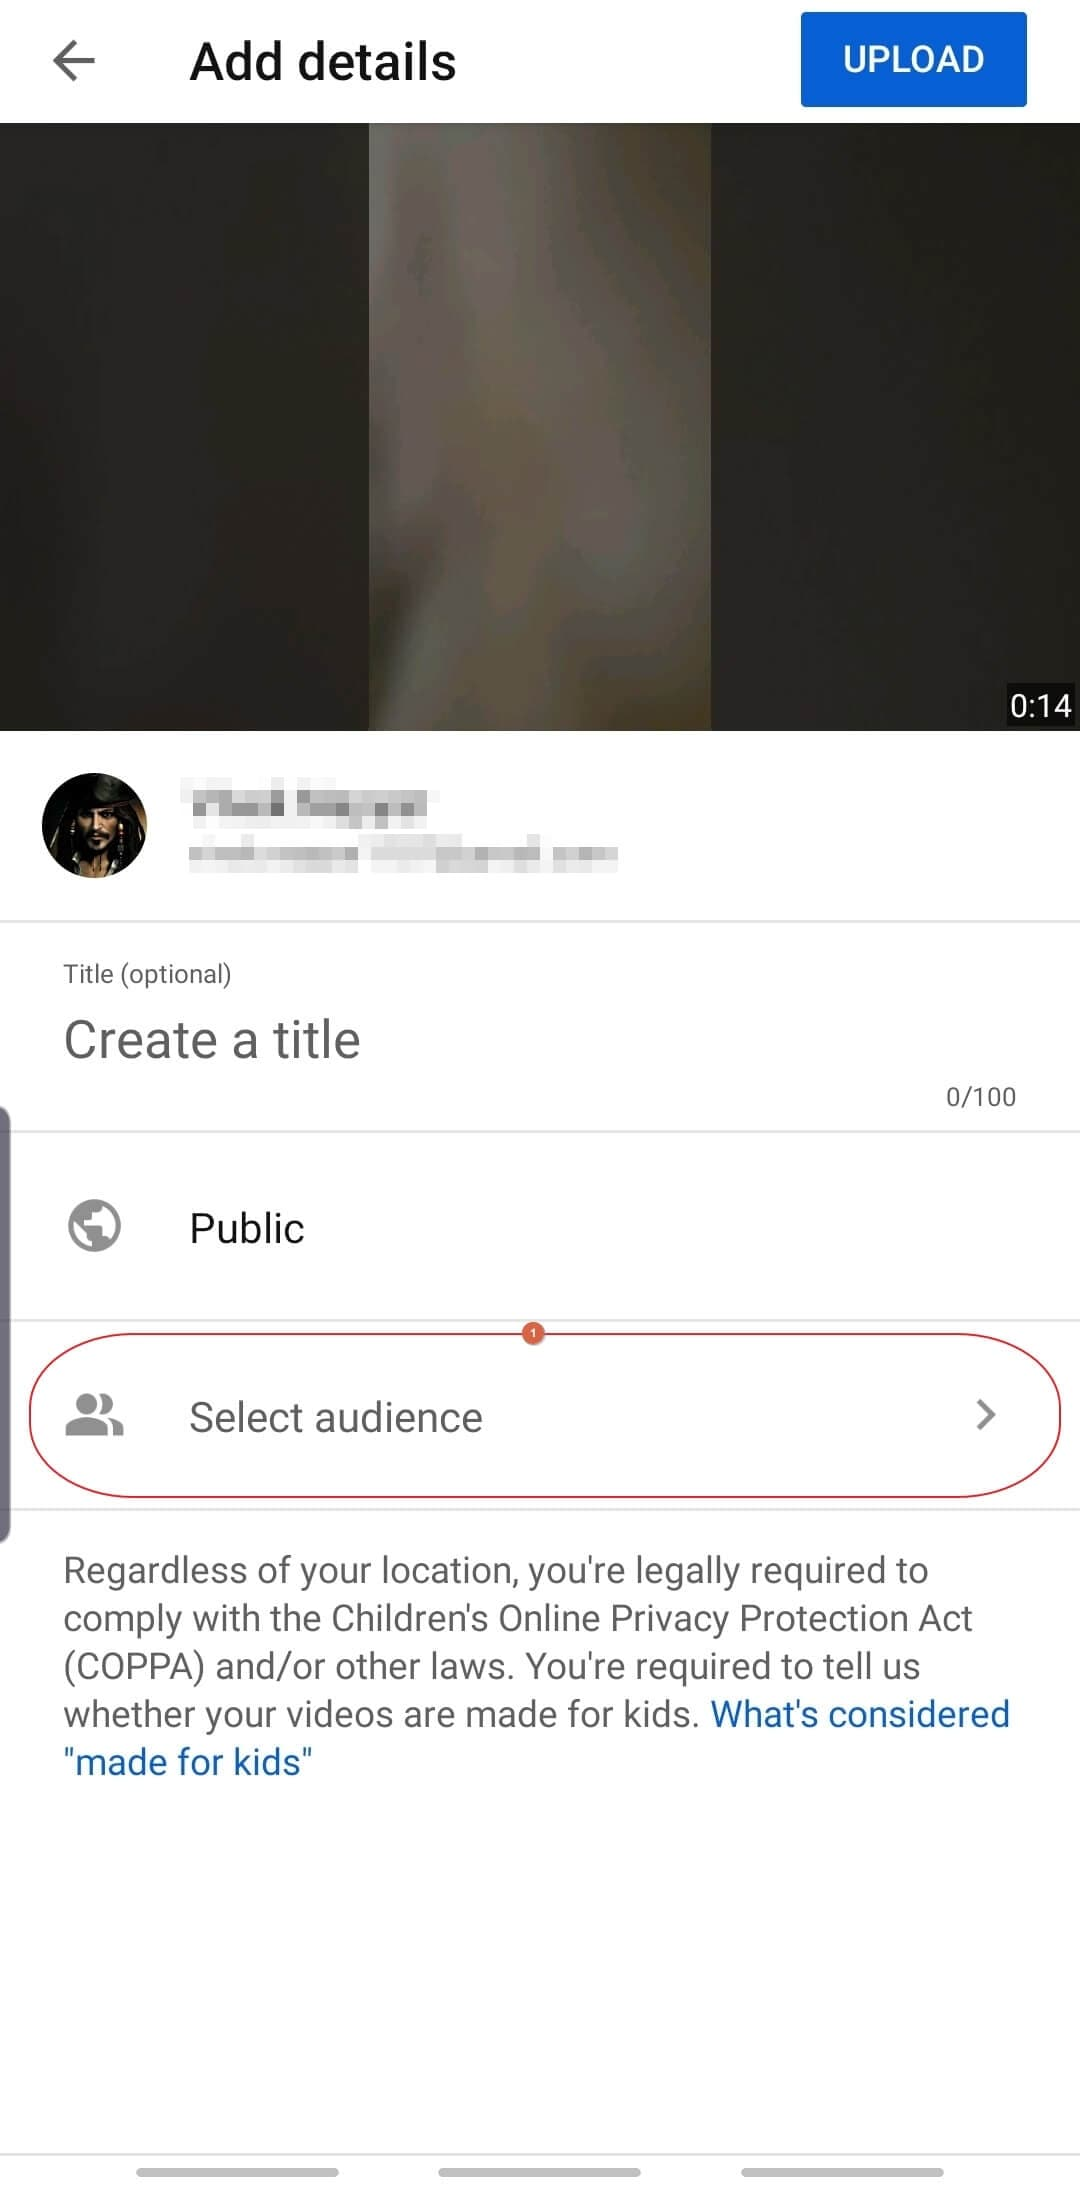 Upload YouTube Shorts video - add details